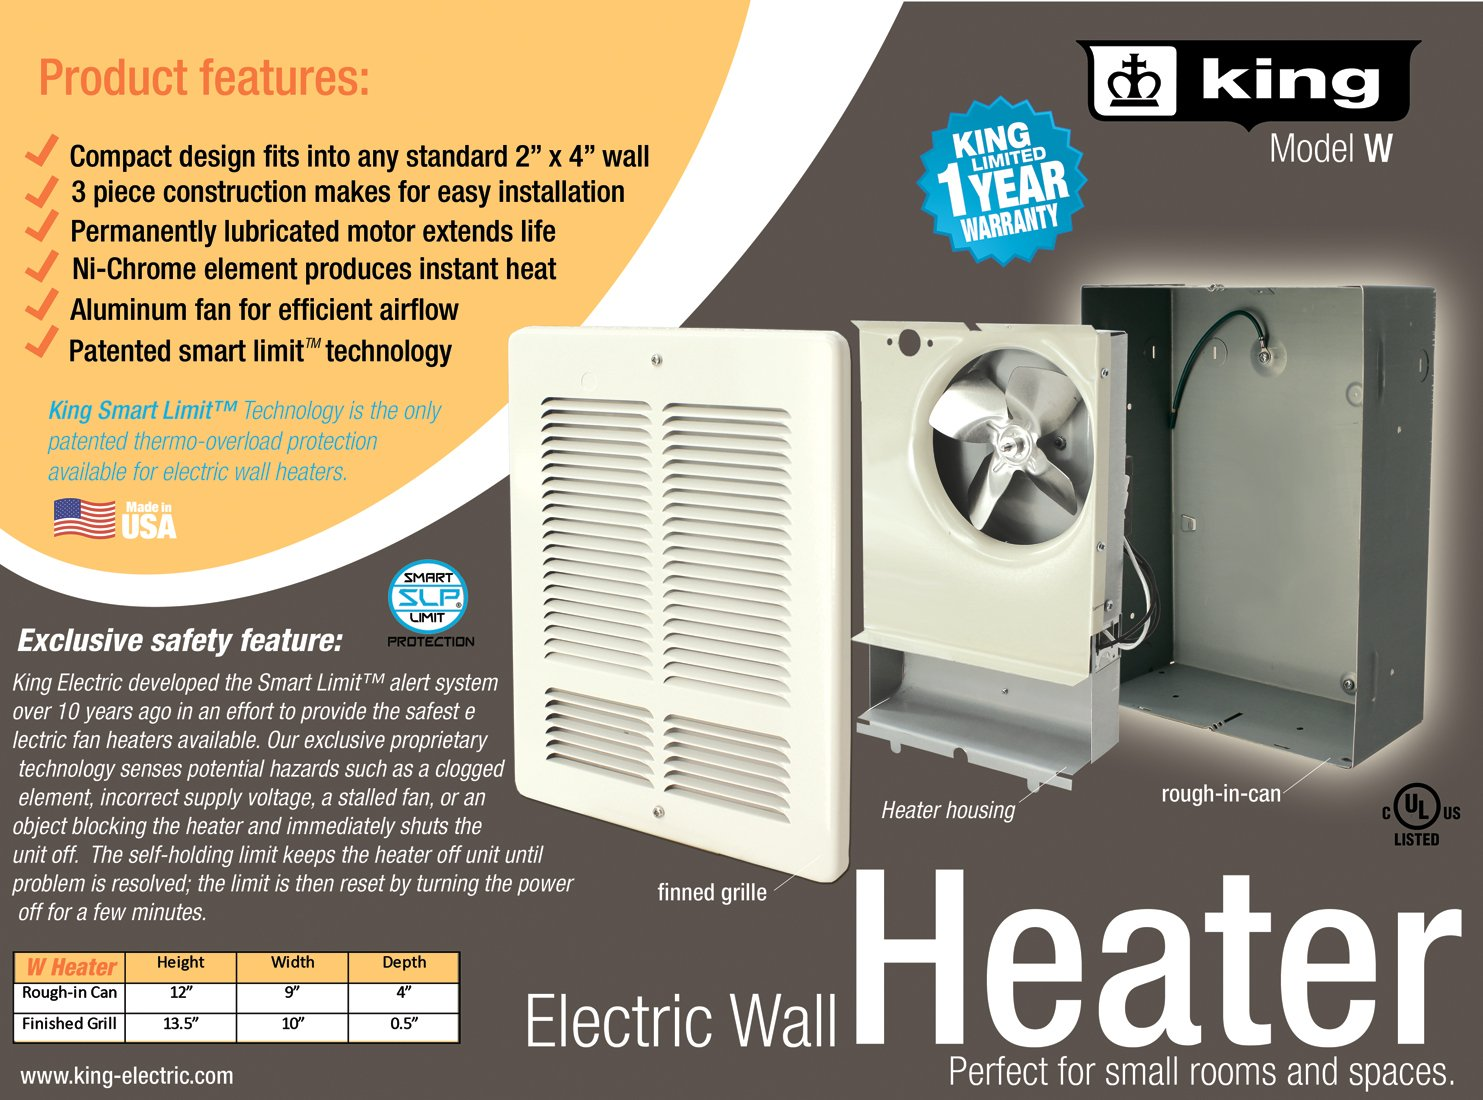 King Electric W2420-W King W2420 240-Volt 2000-Watt Electric Wall Heater, Bright White by King Electric (Image #3)